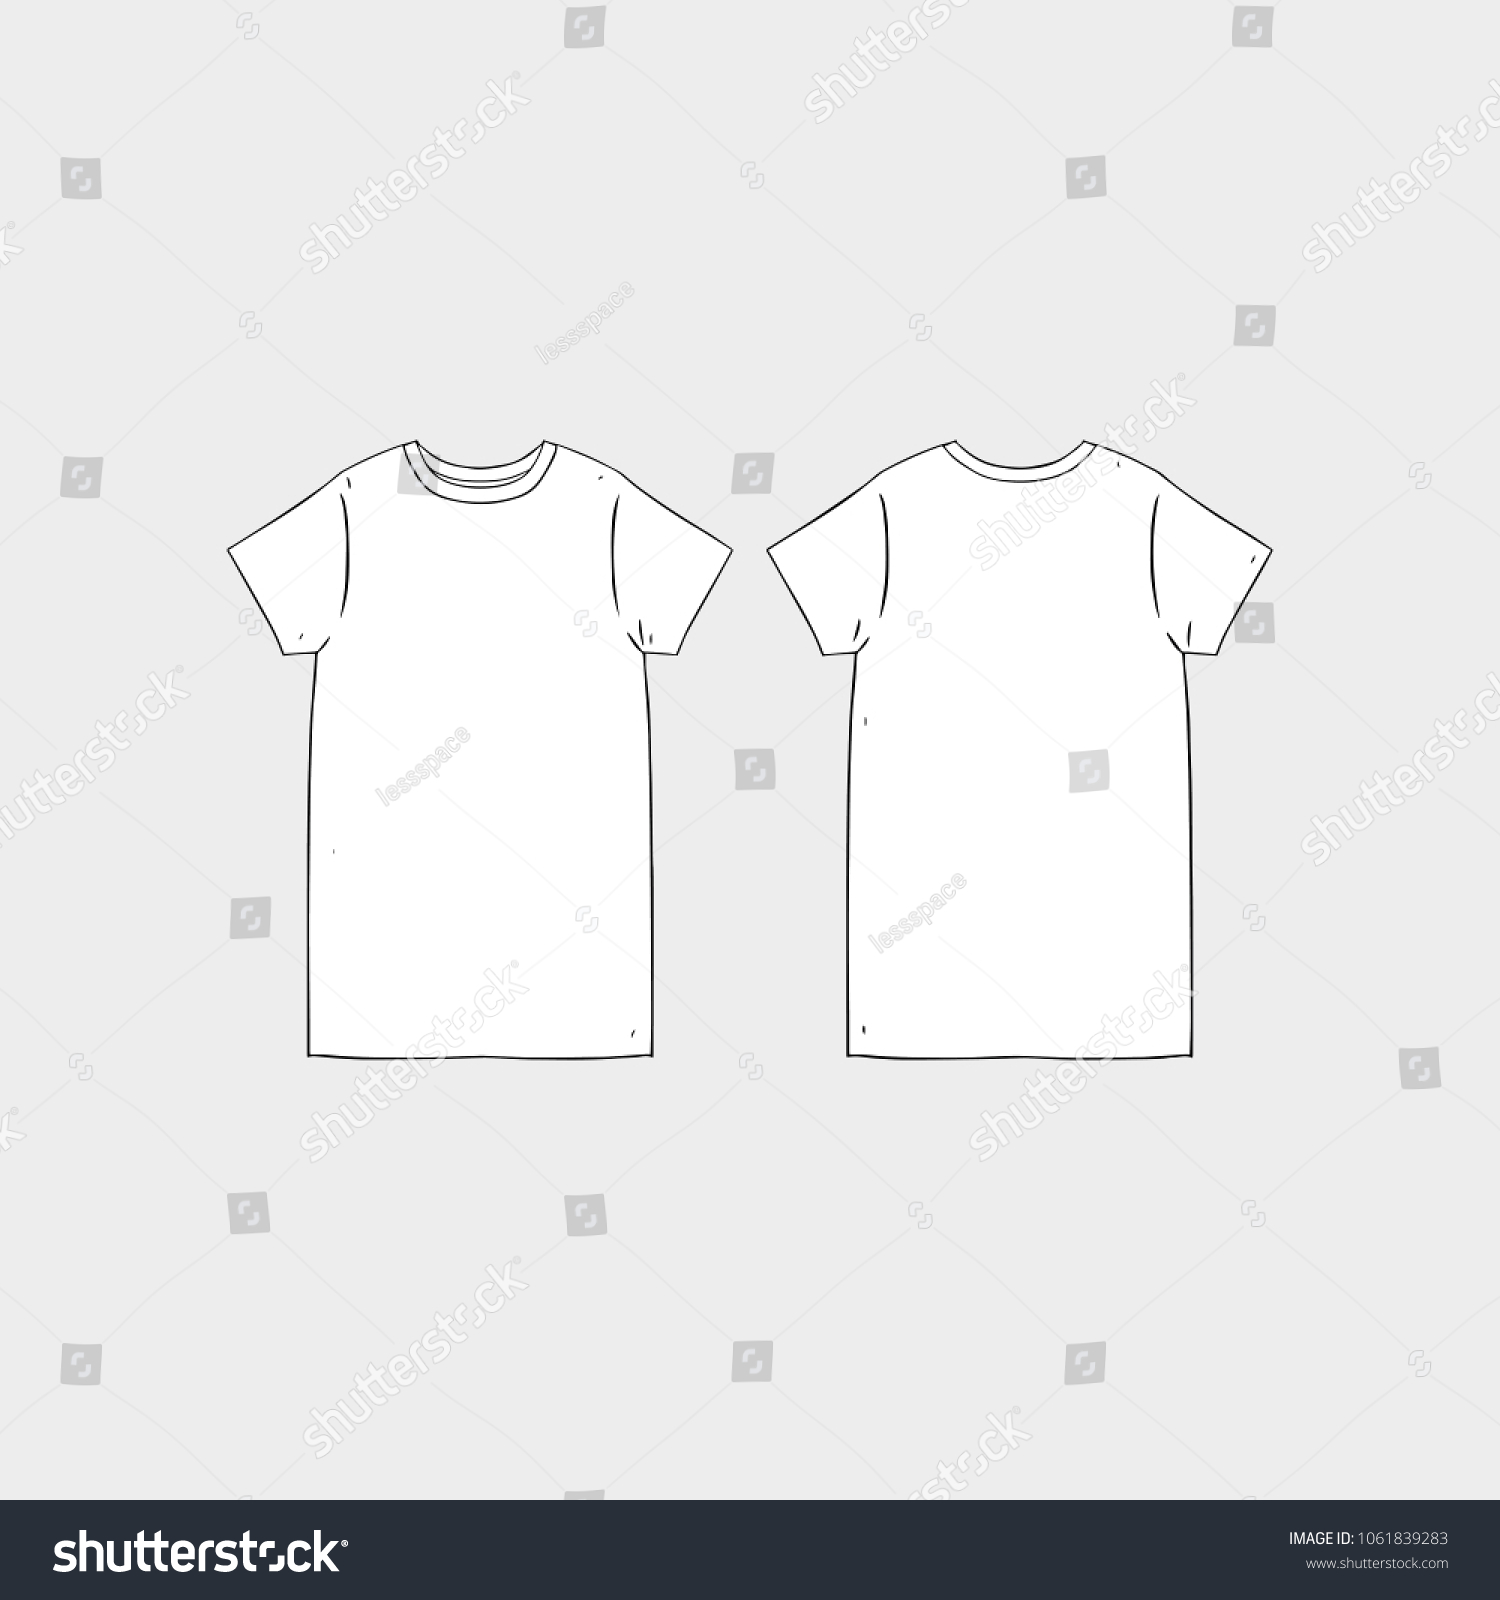 image relating to Printable T Shirt Templates identified as Blank Tshirt Template Printable